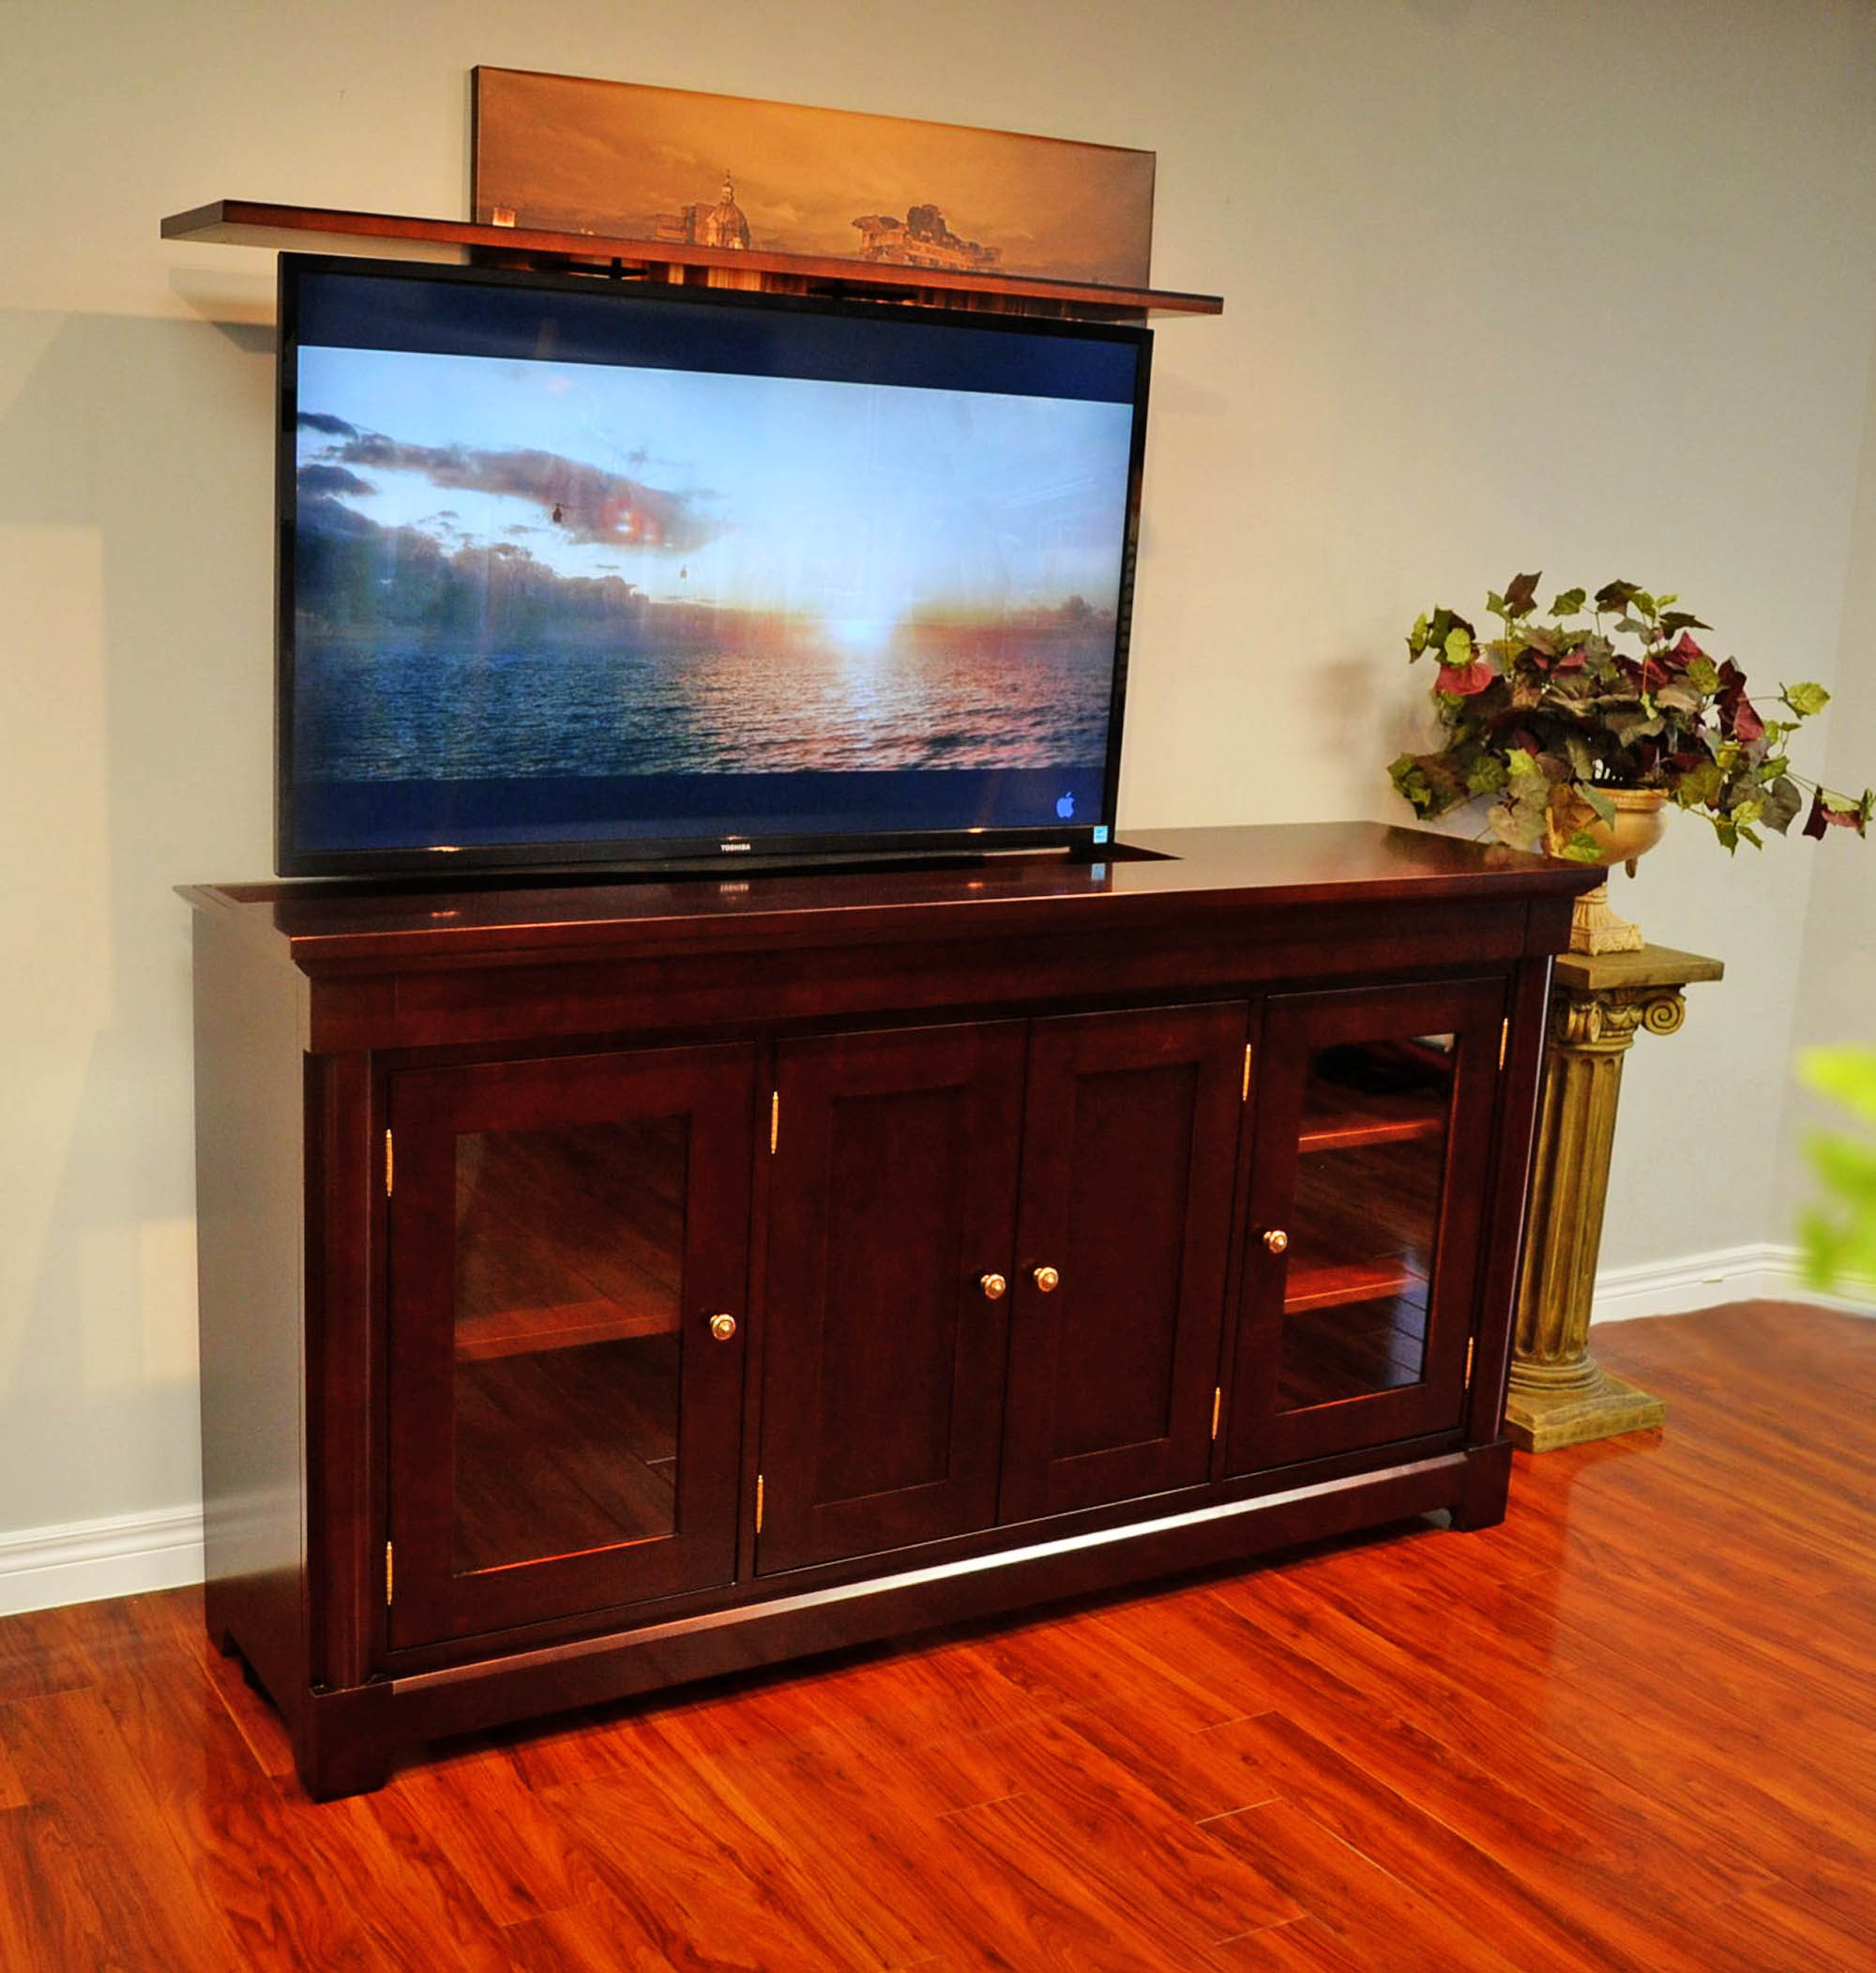 2018.03.16 Activated Decor Motorized TV Furniture The Rouge Valley TV Lift  Cabinet 3